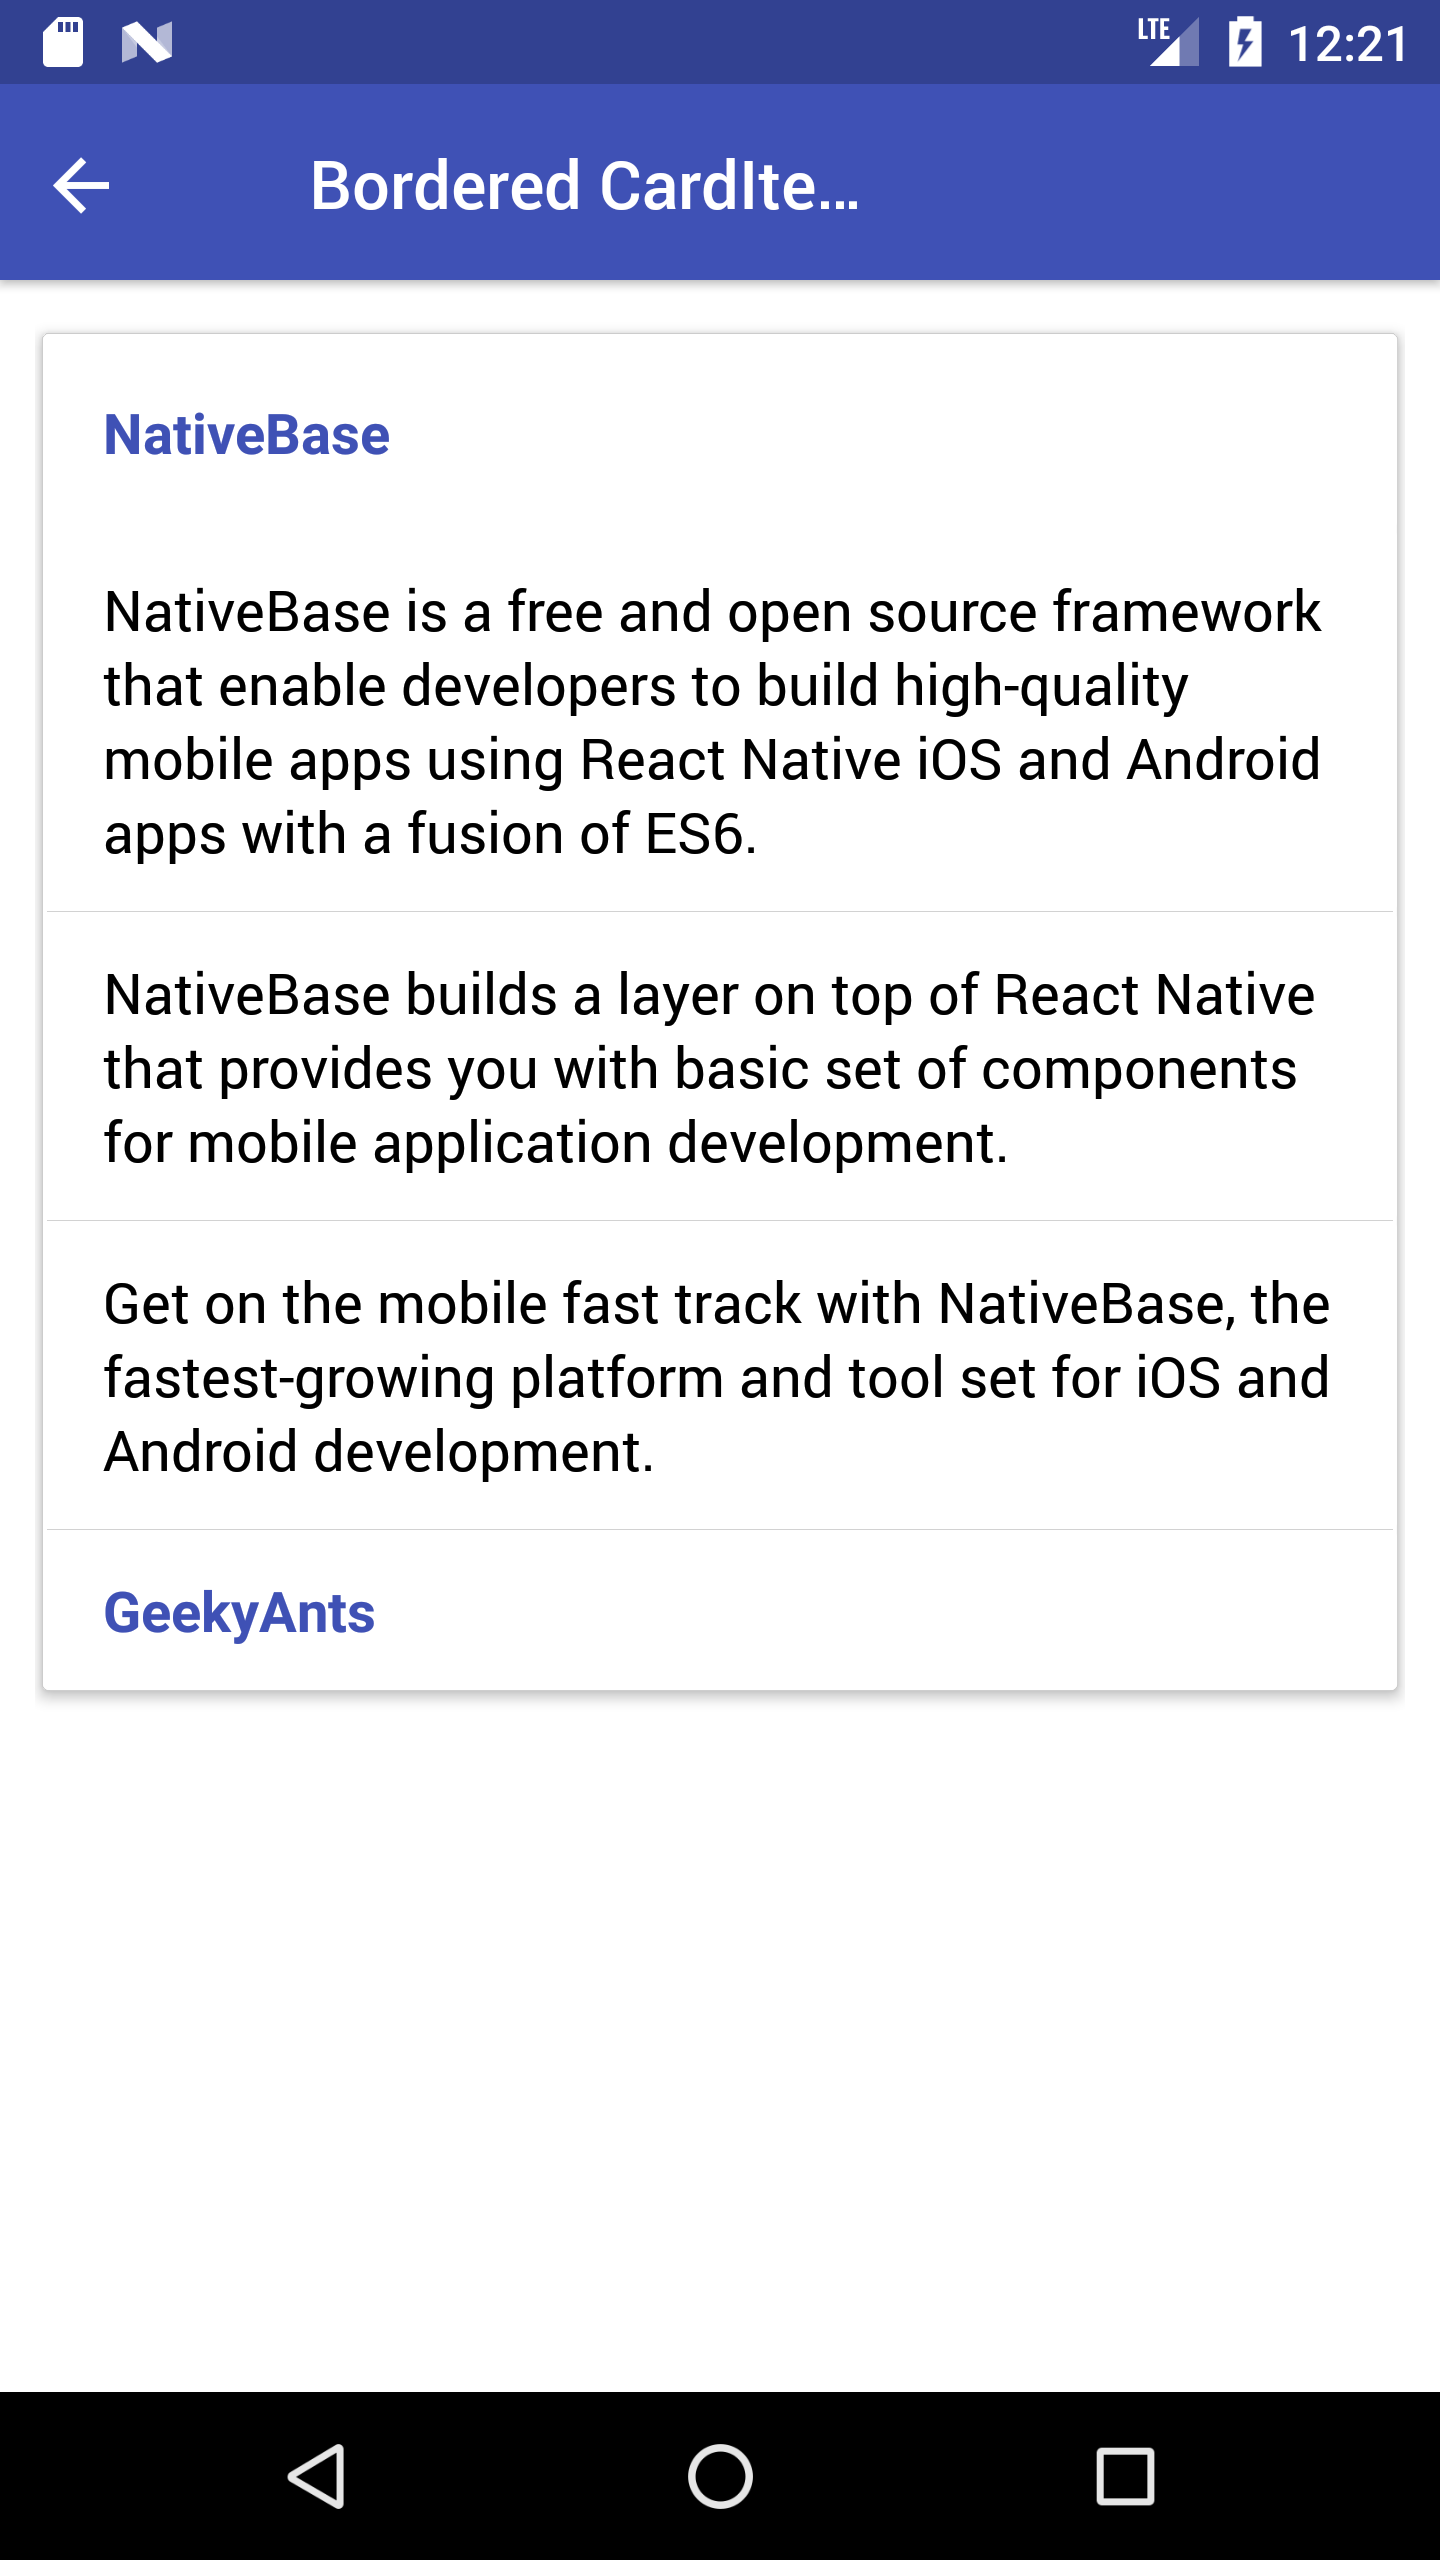 Preview android carditem-bordered-headref